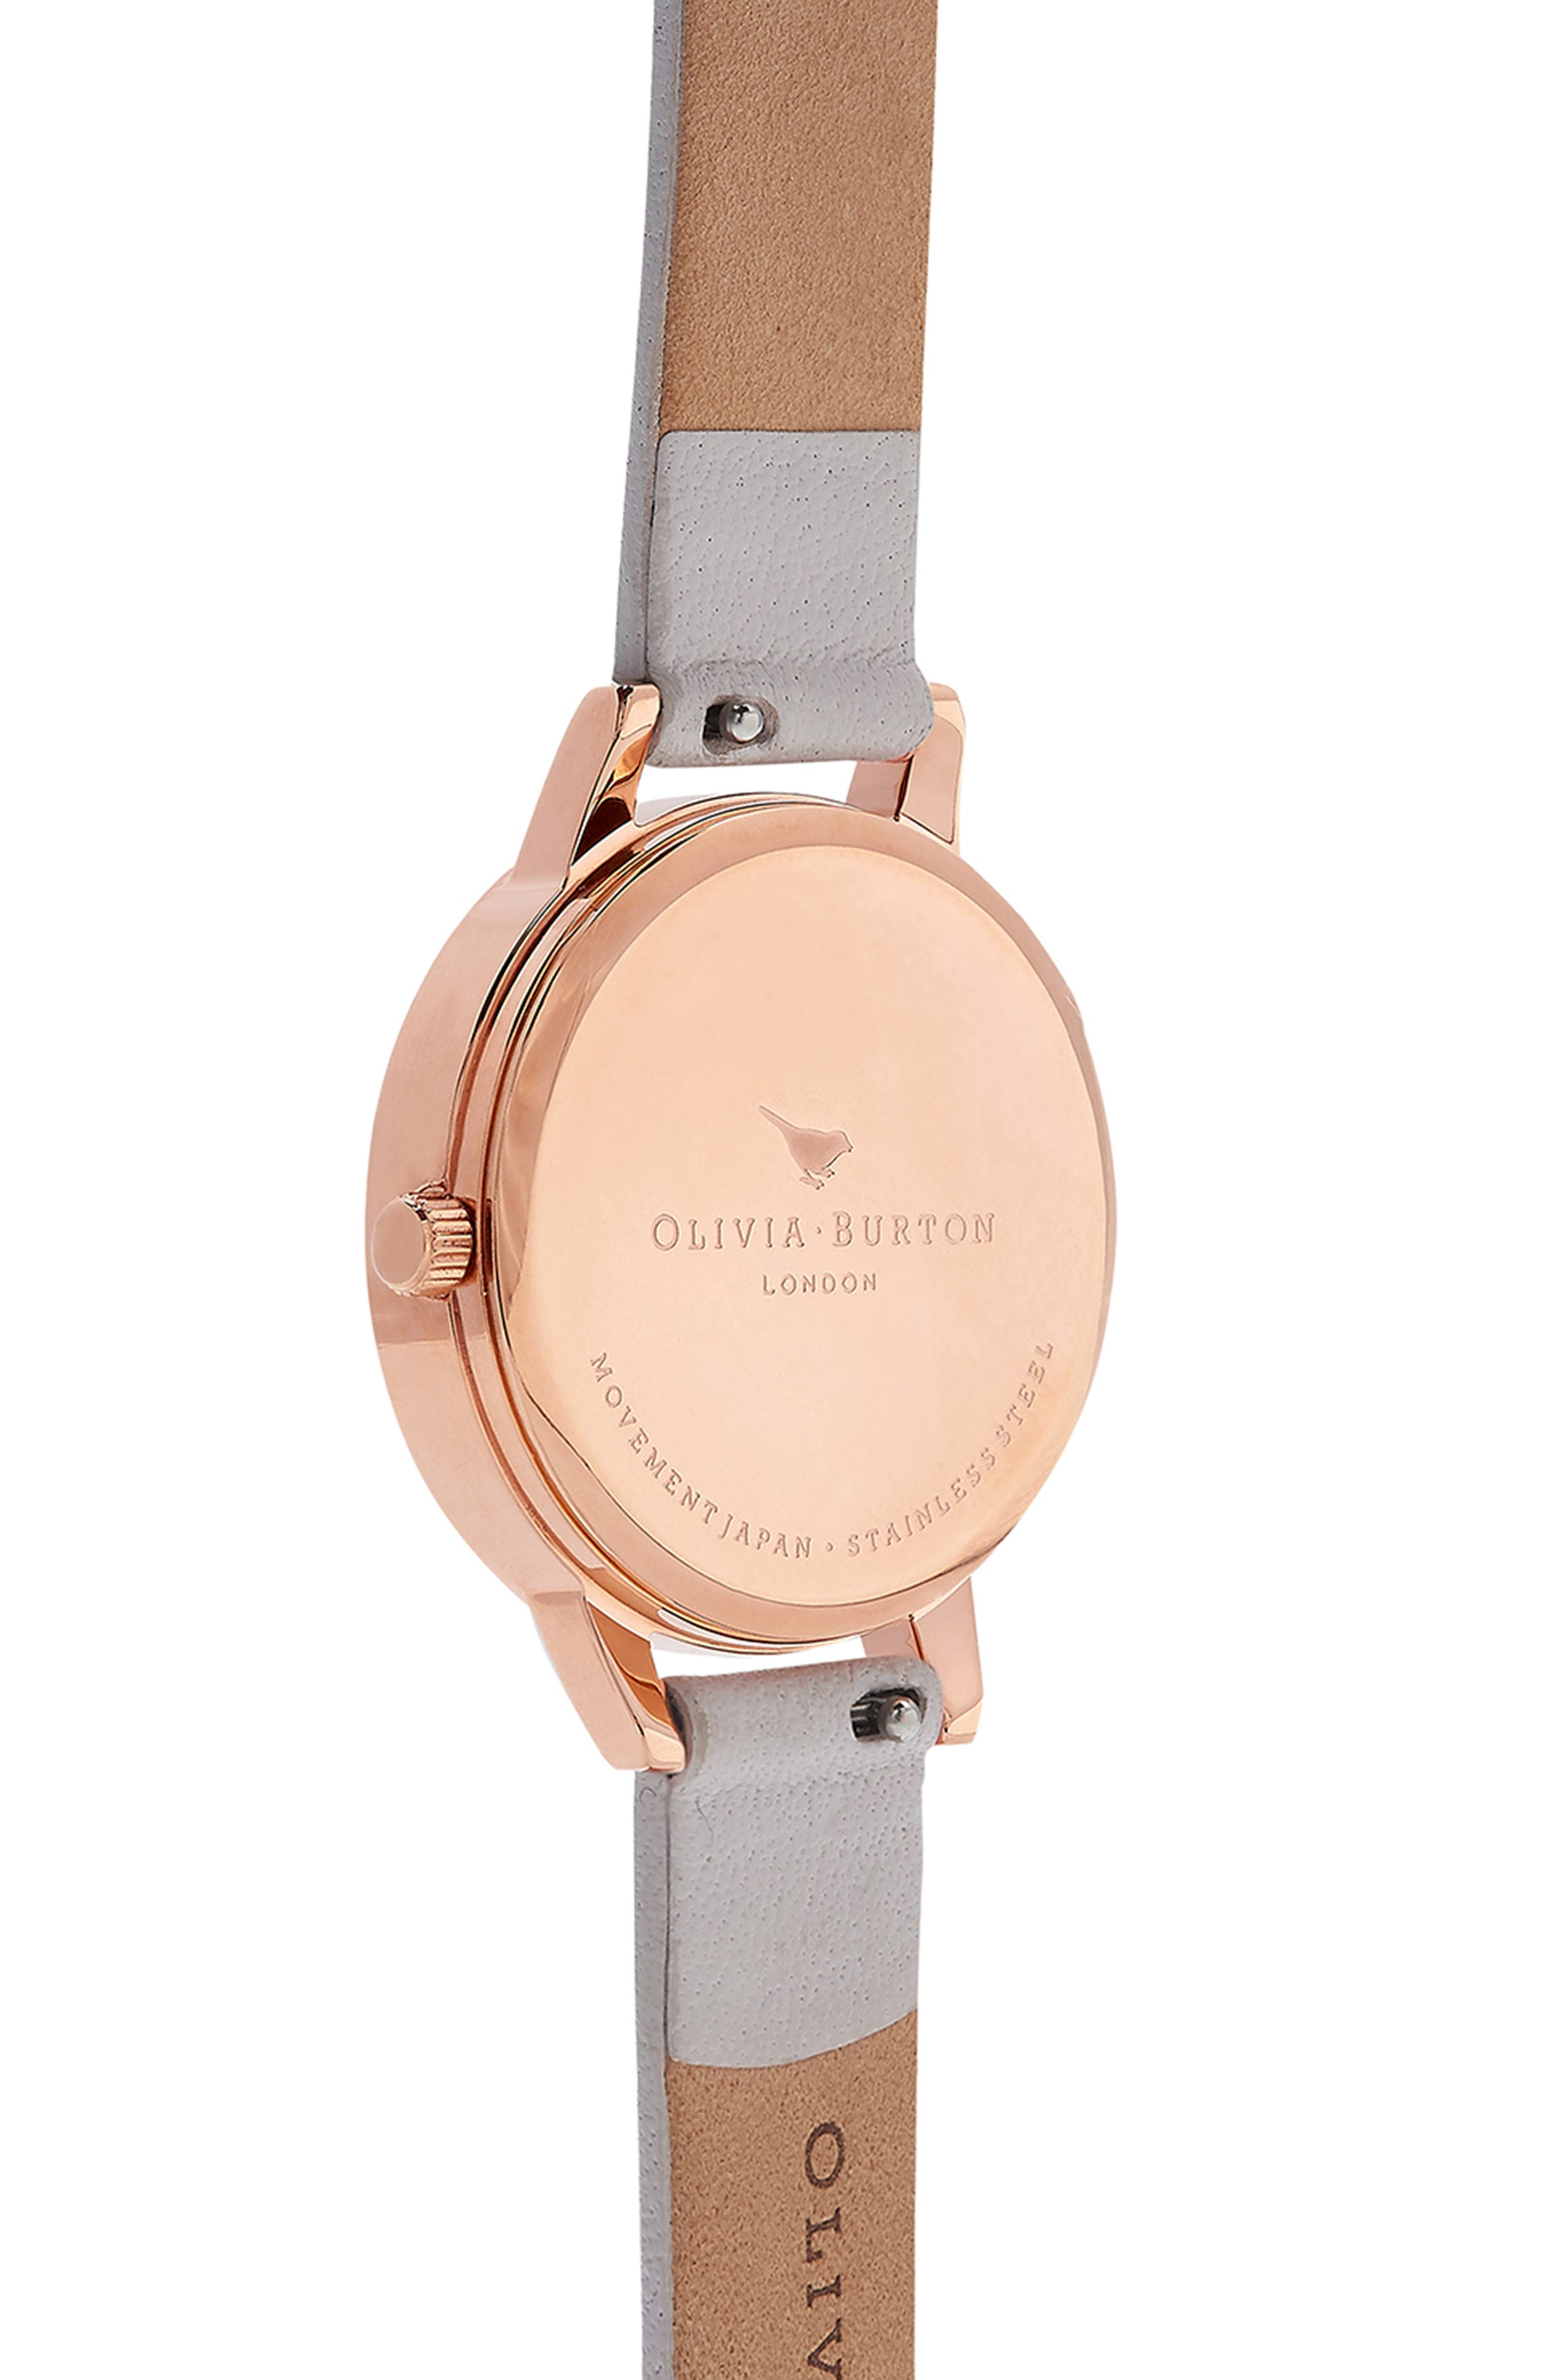 OLIVIA BURTON, Abstract Florals Leather Strap Watch, 30mm, Alternate thumbnail 3, color, BLUSH/ ROSE GOLD